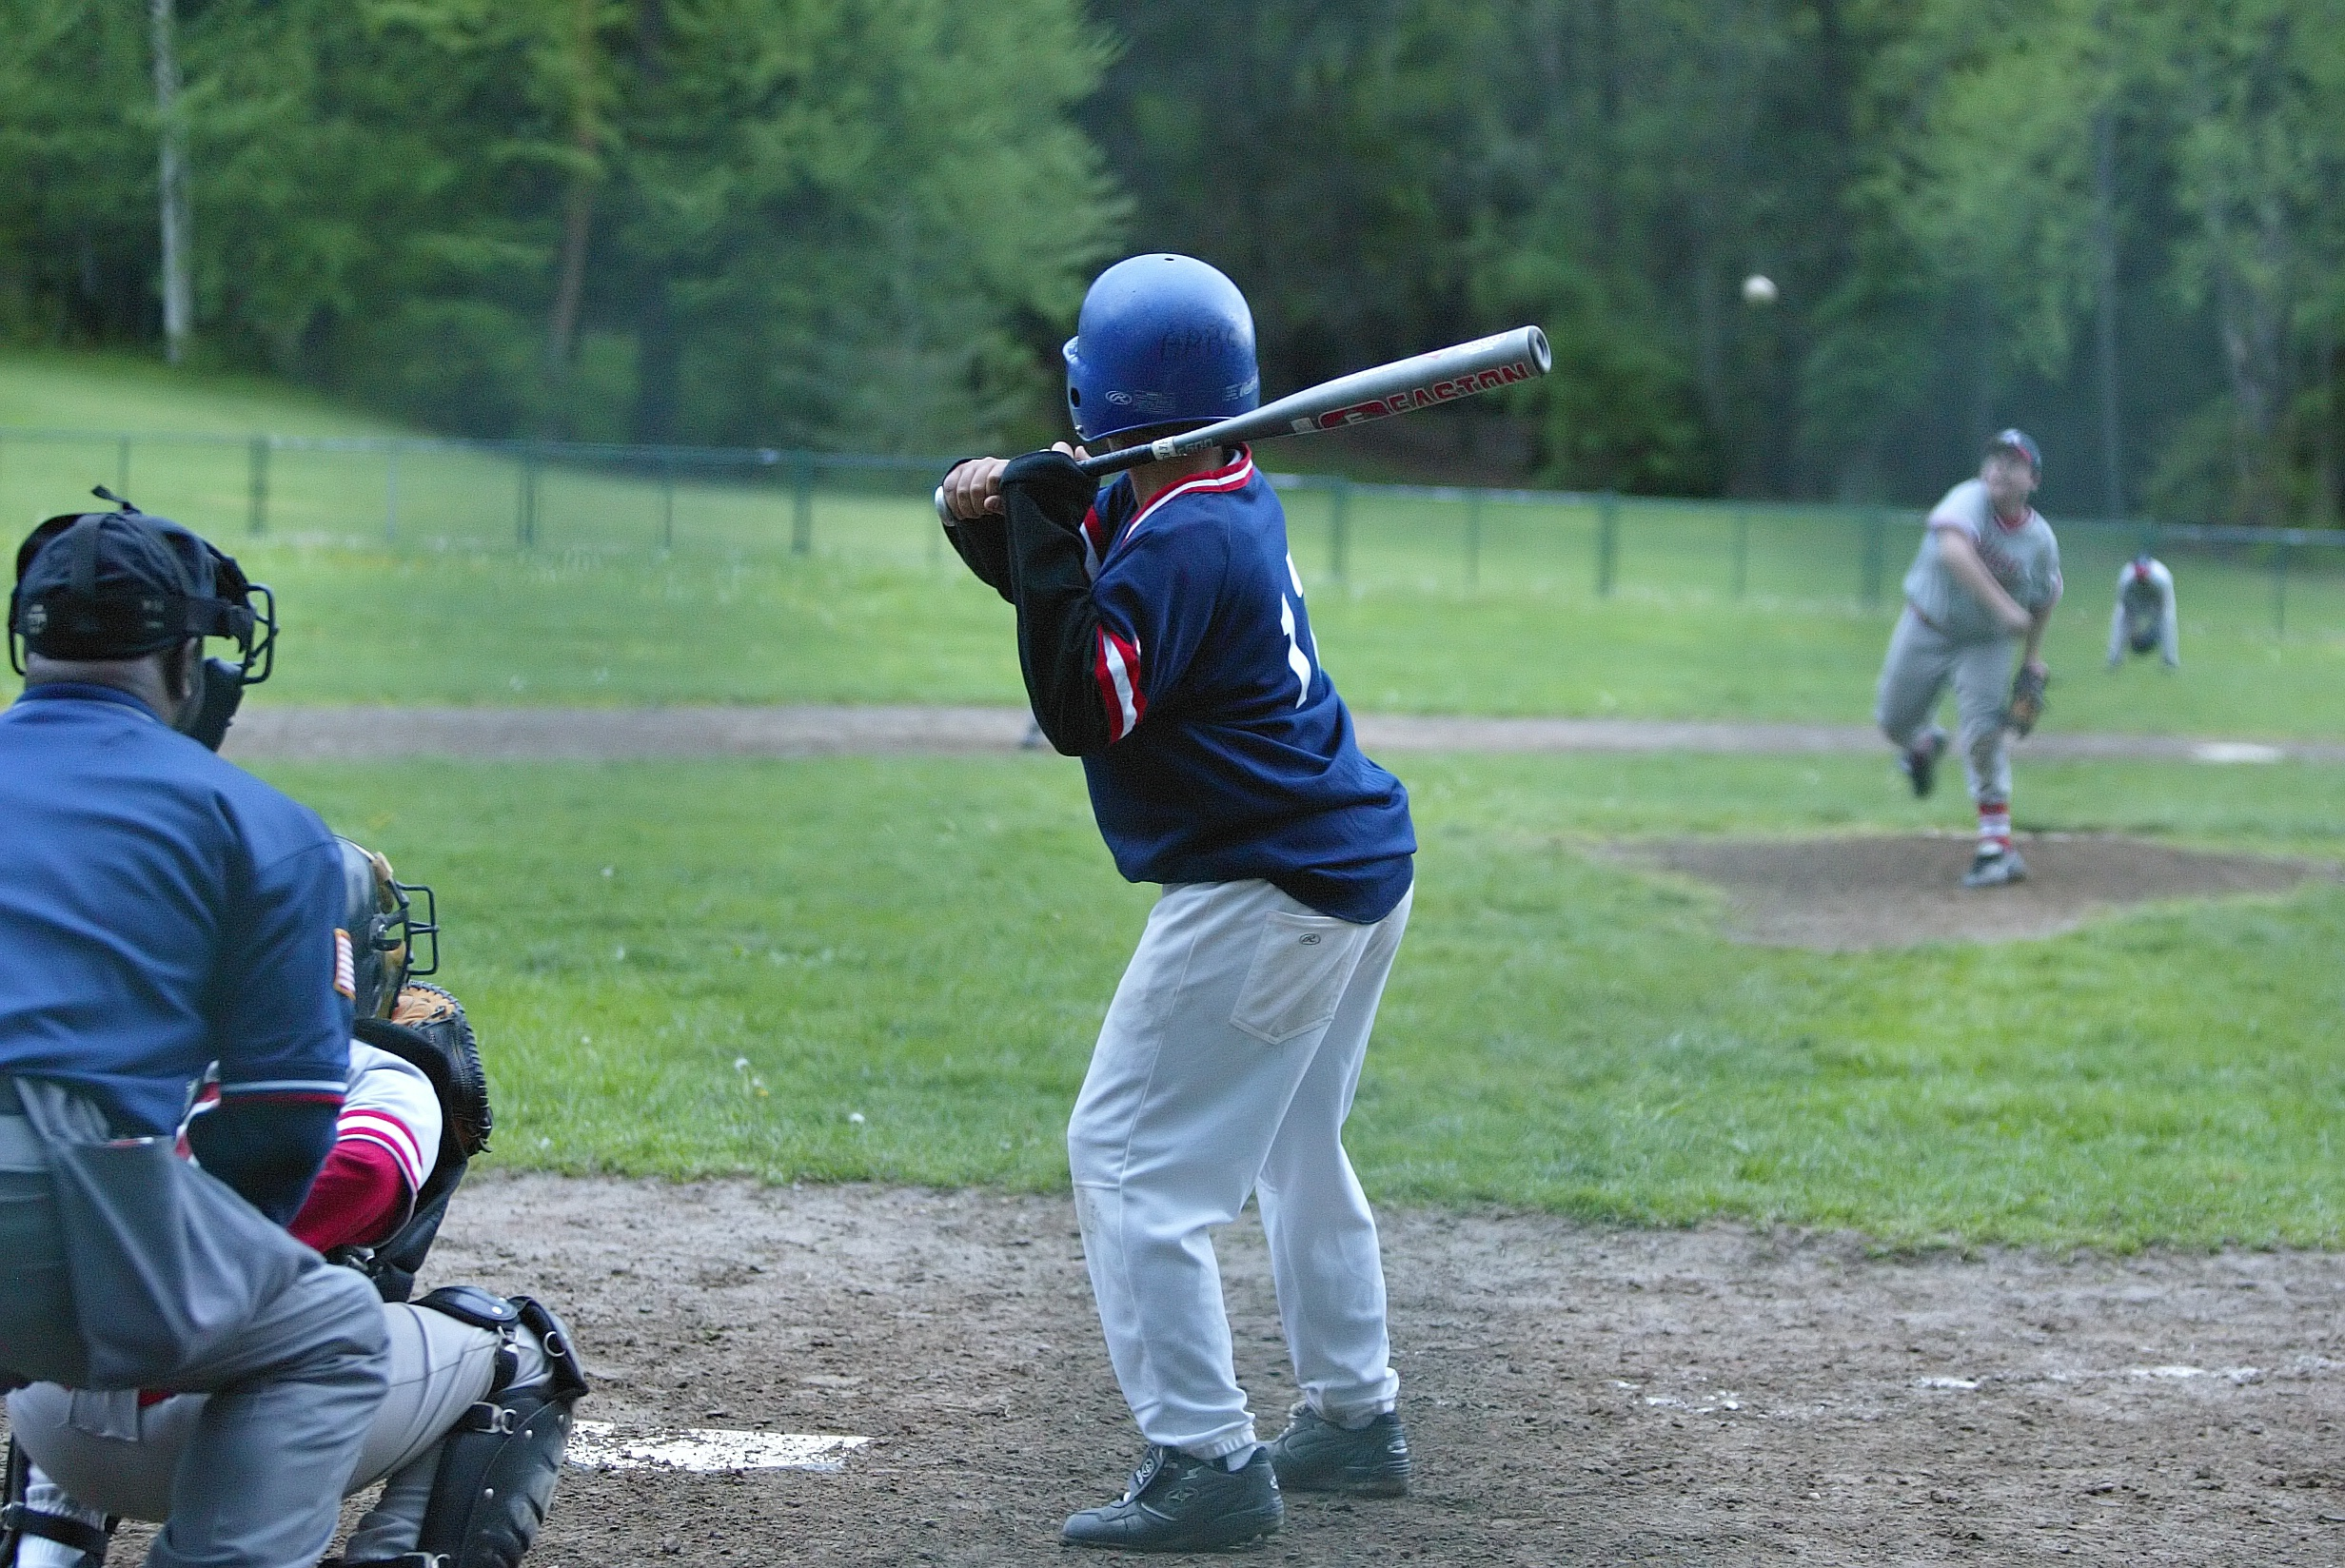 Image result for little league kid at plate pictures